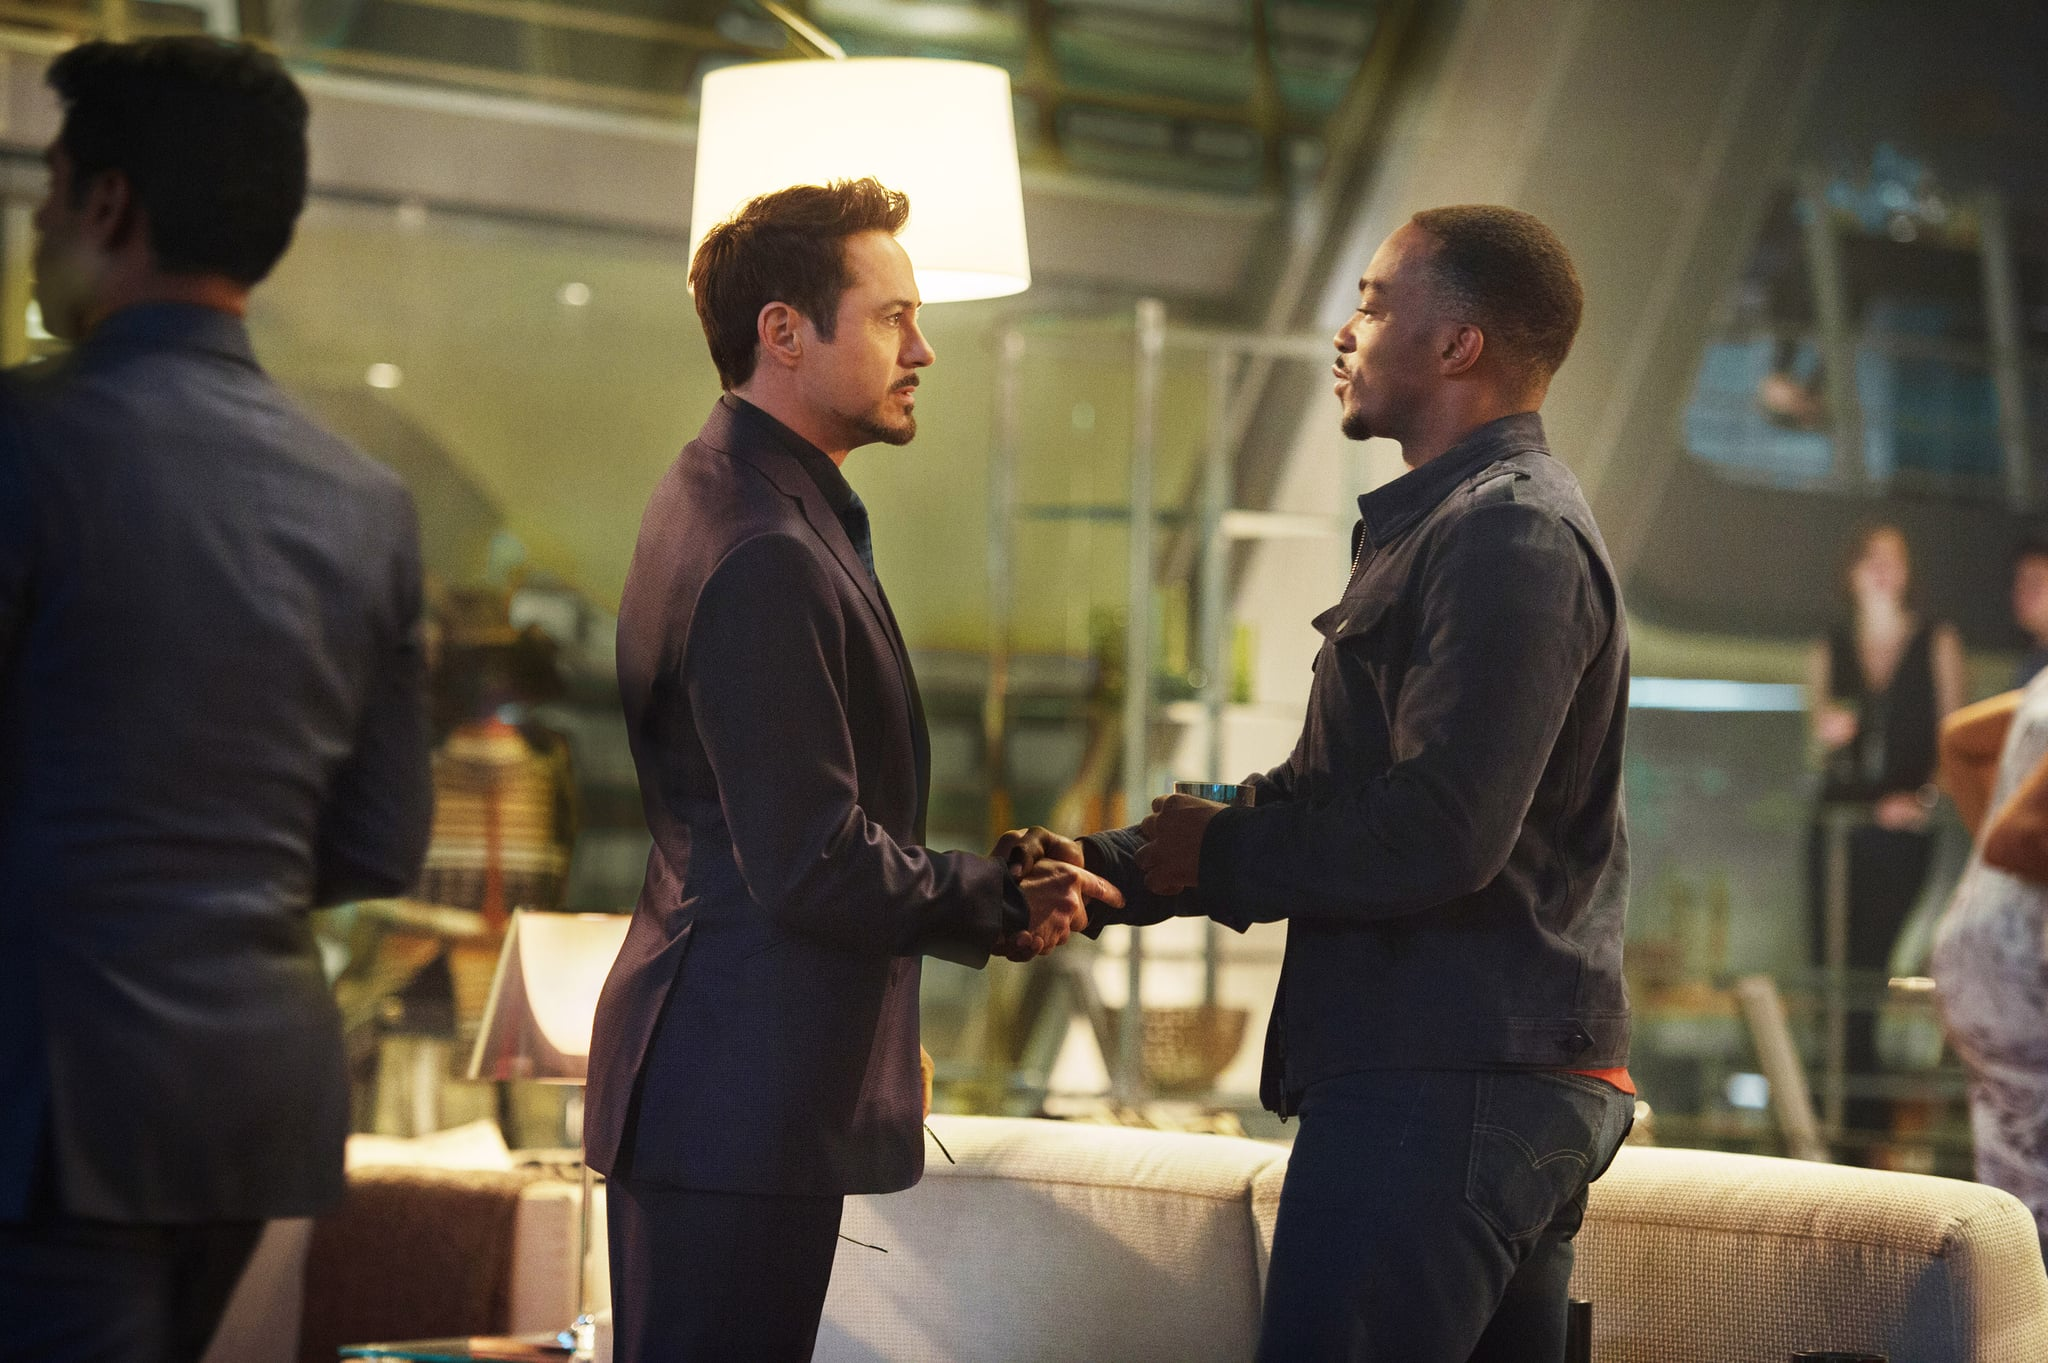 AVENGERS: AGE OF ULTRON, from left: Robert Downey Jr. as Tony Stark/Iron Man, Anthony Mackie as Sam Wilson/Falcon, 2015. ph: Jay Maidment /  Walt Disney Studios Motion Pictures / courtesy Everett Collection